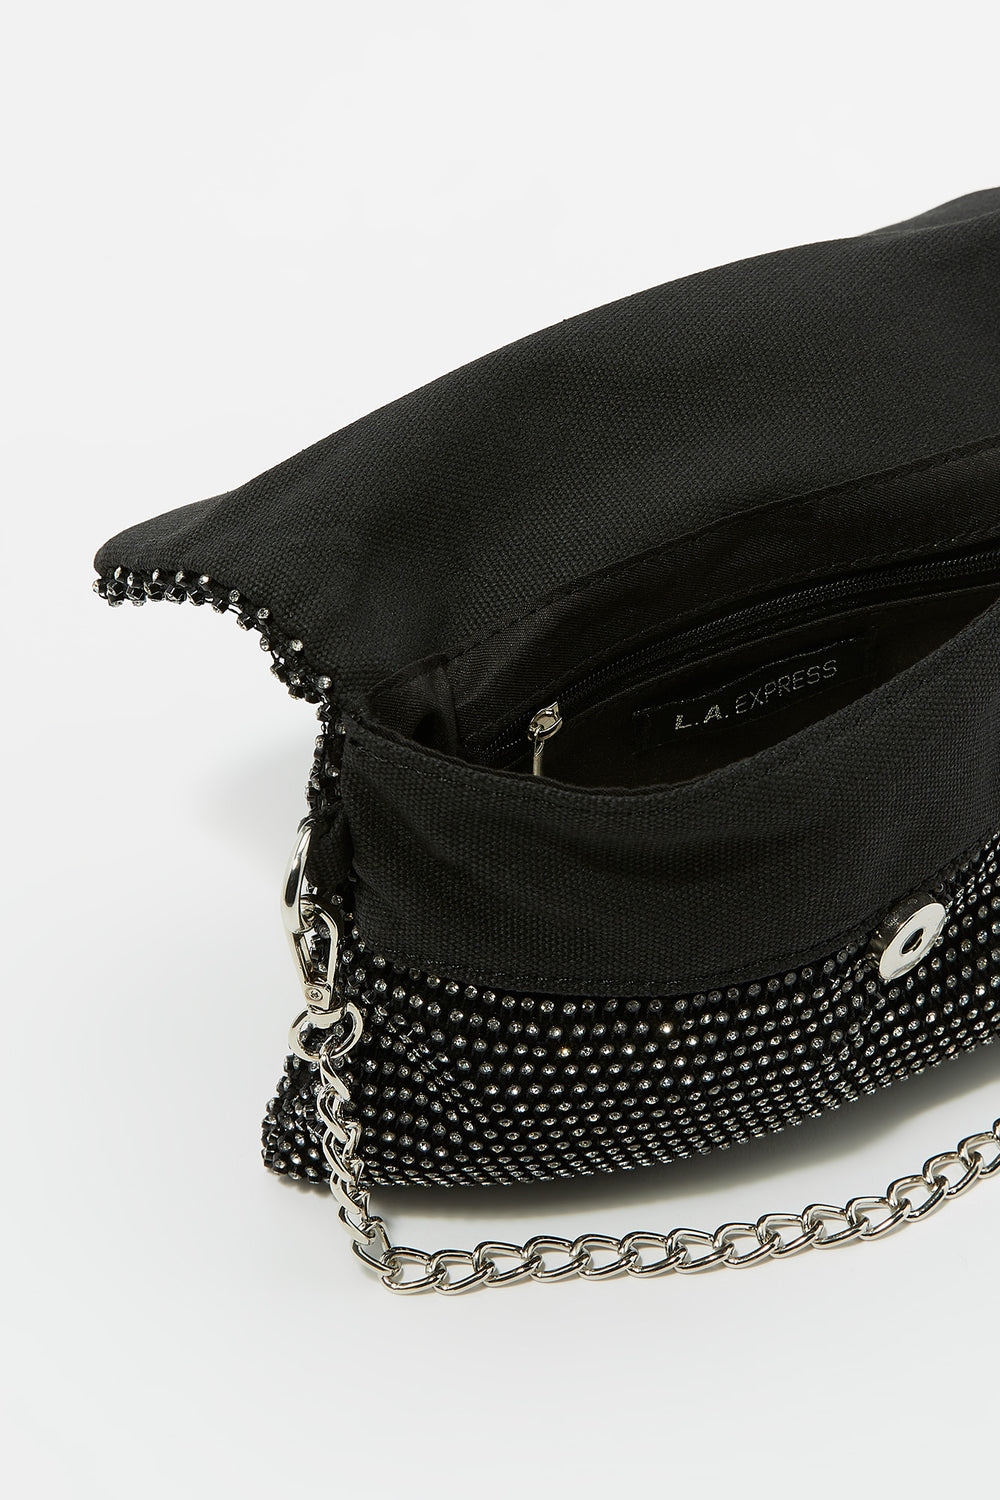 Rhinestone Crossbody Chain Bag Black